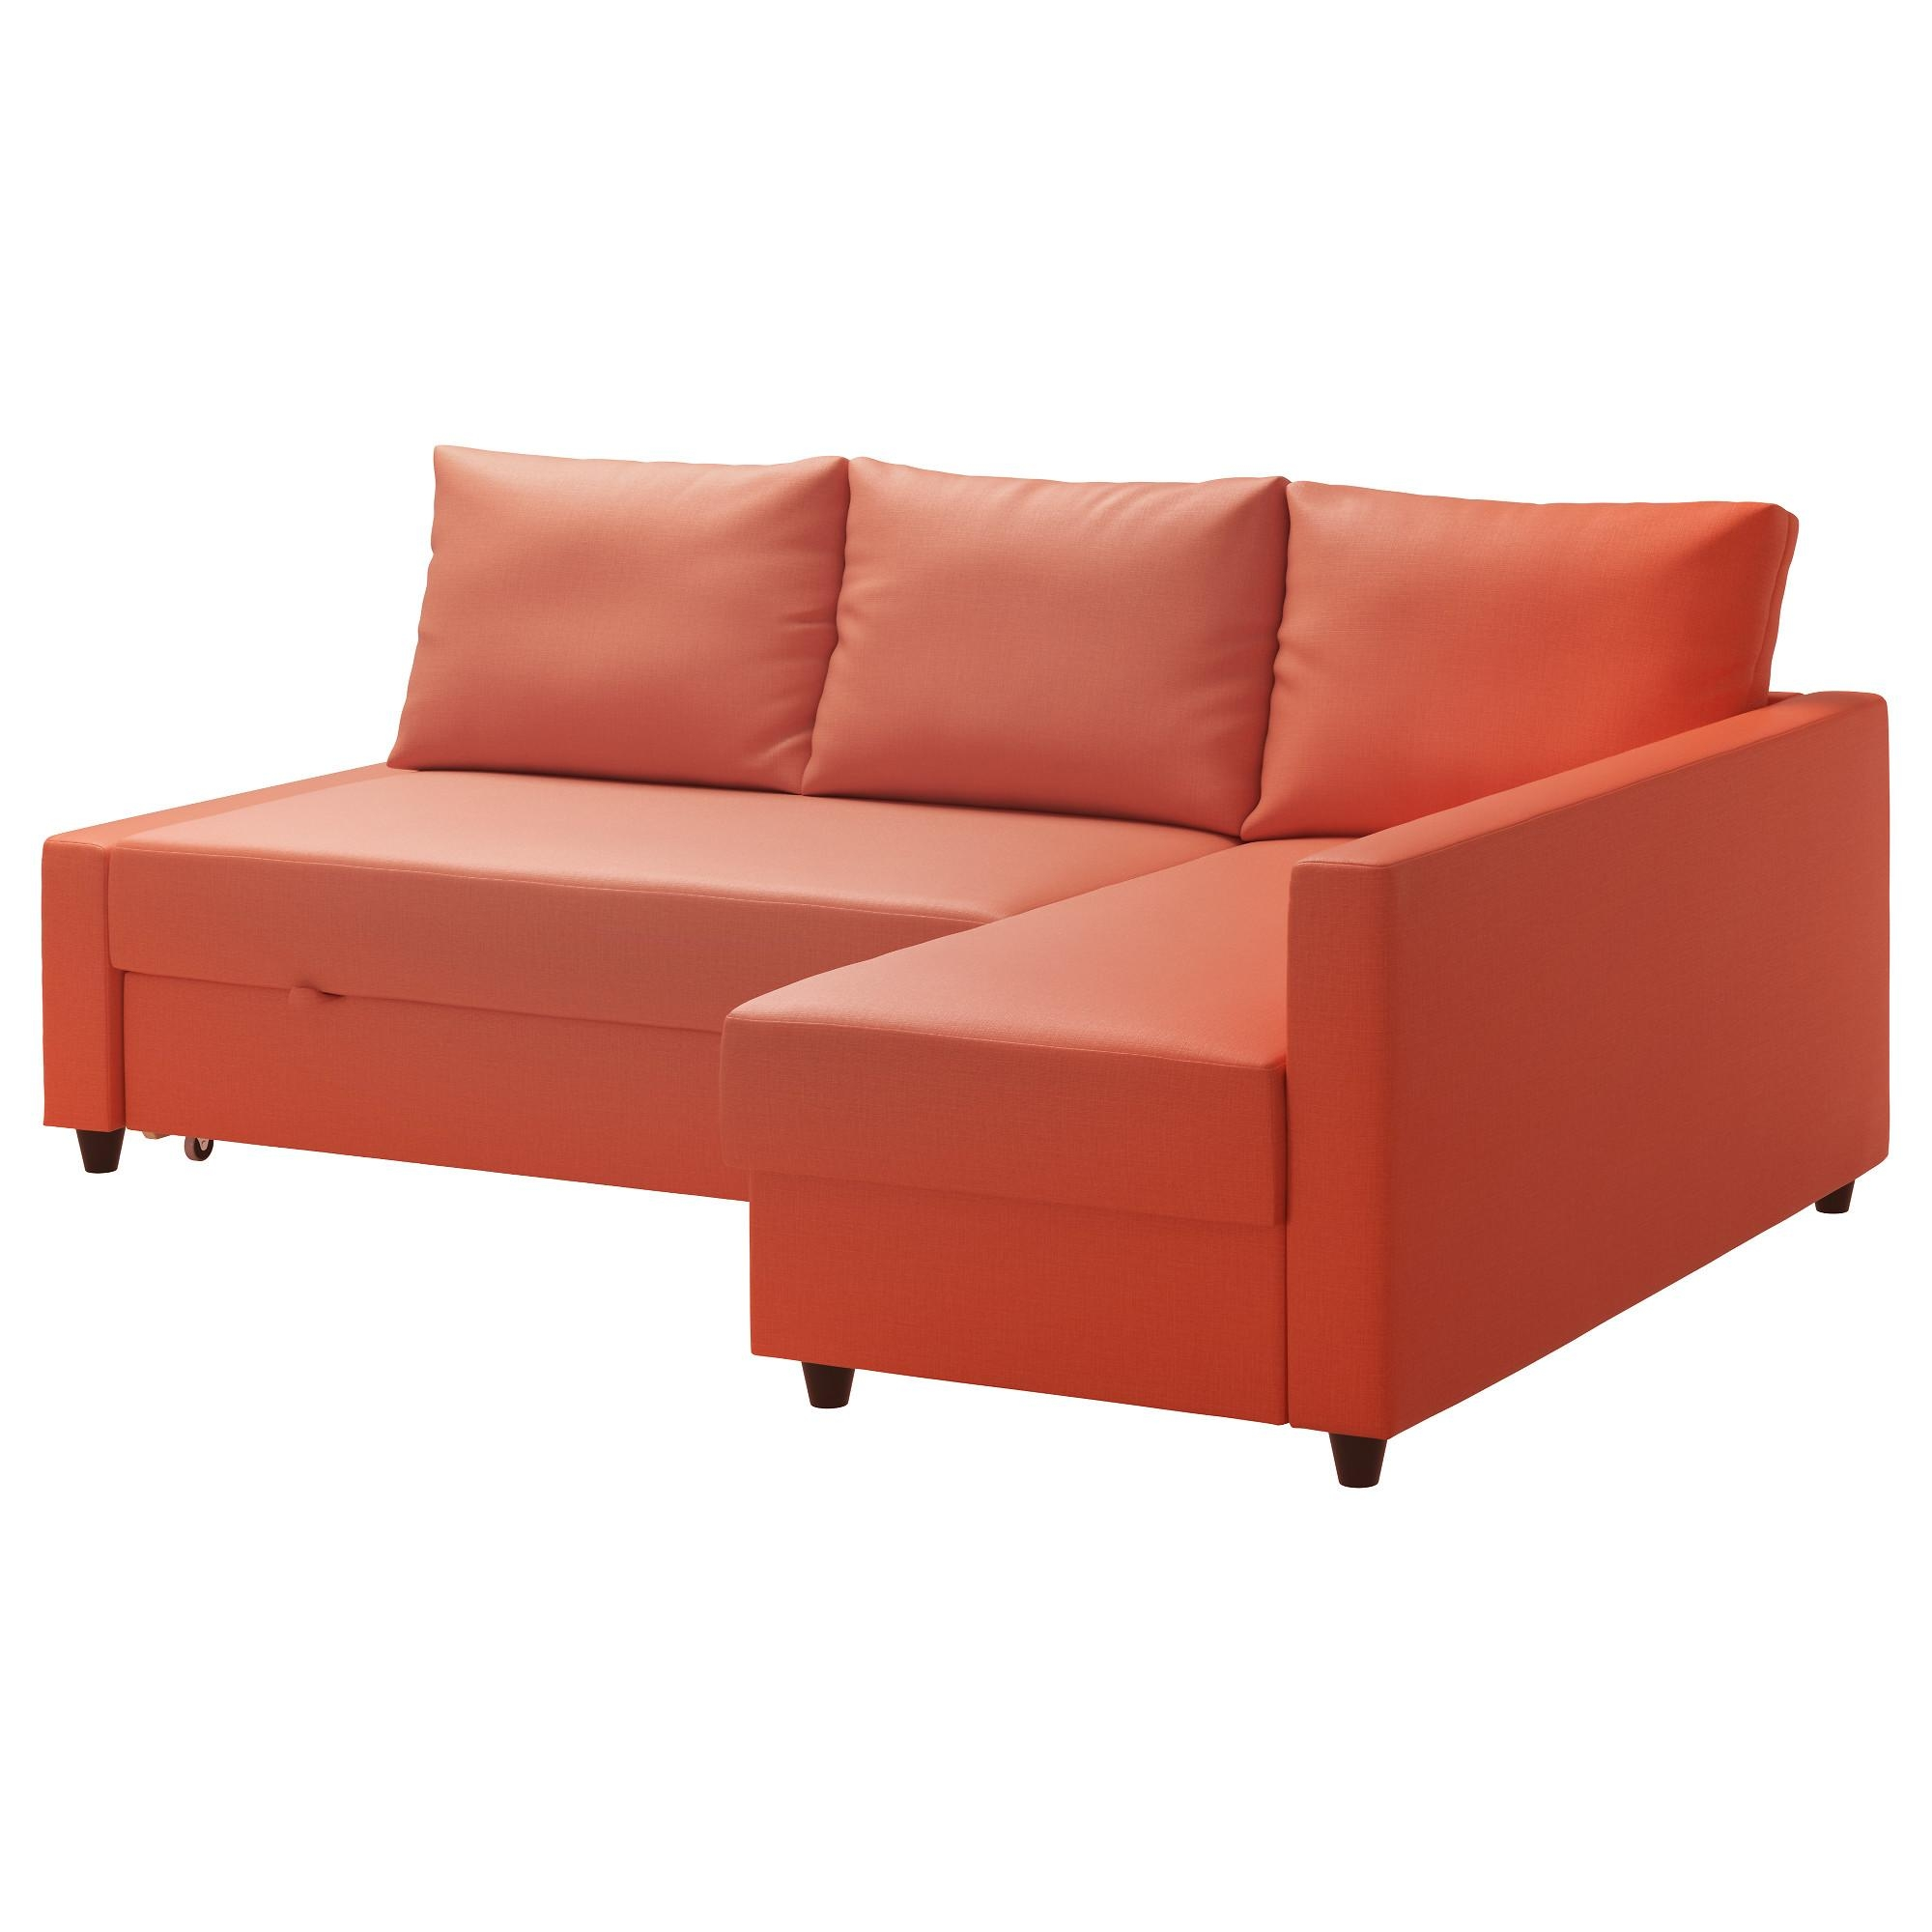 Friheten Corner Sofa Bed With Storage – Skiftebo Dark Orange – Ikea Regarding Orange Ikea Sofas (View 9 of 20)